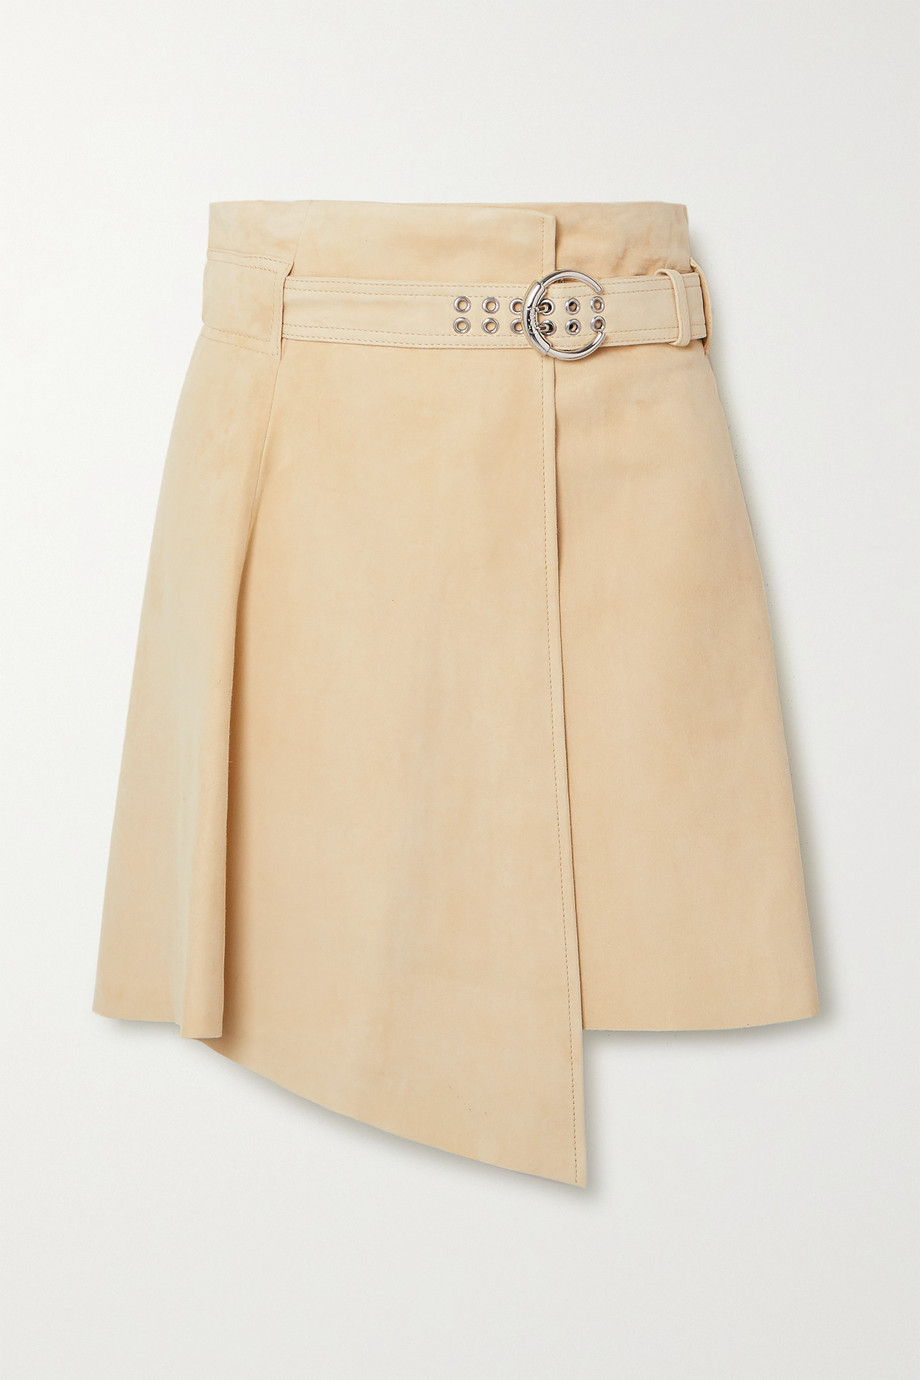 Chloé Asymmetric suede mini skirt